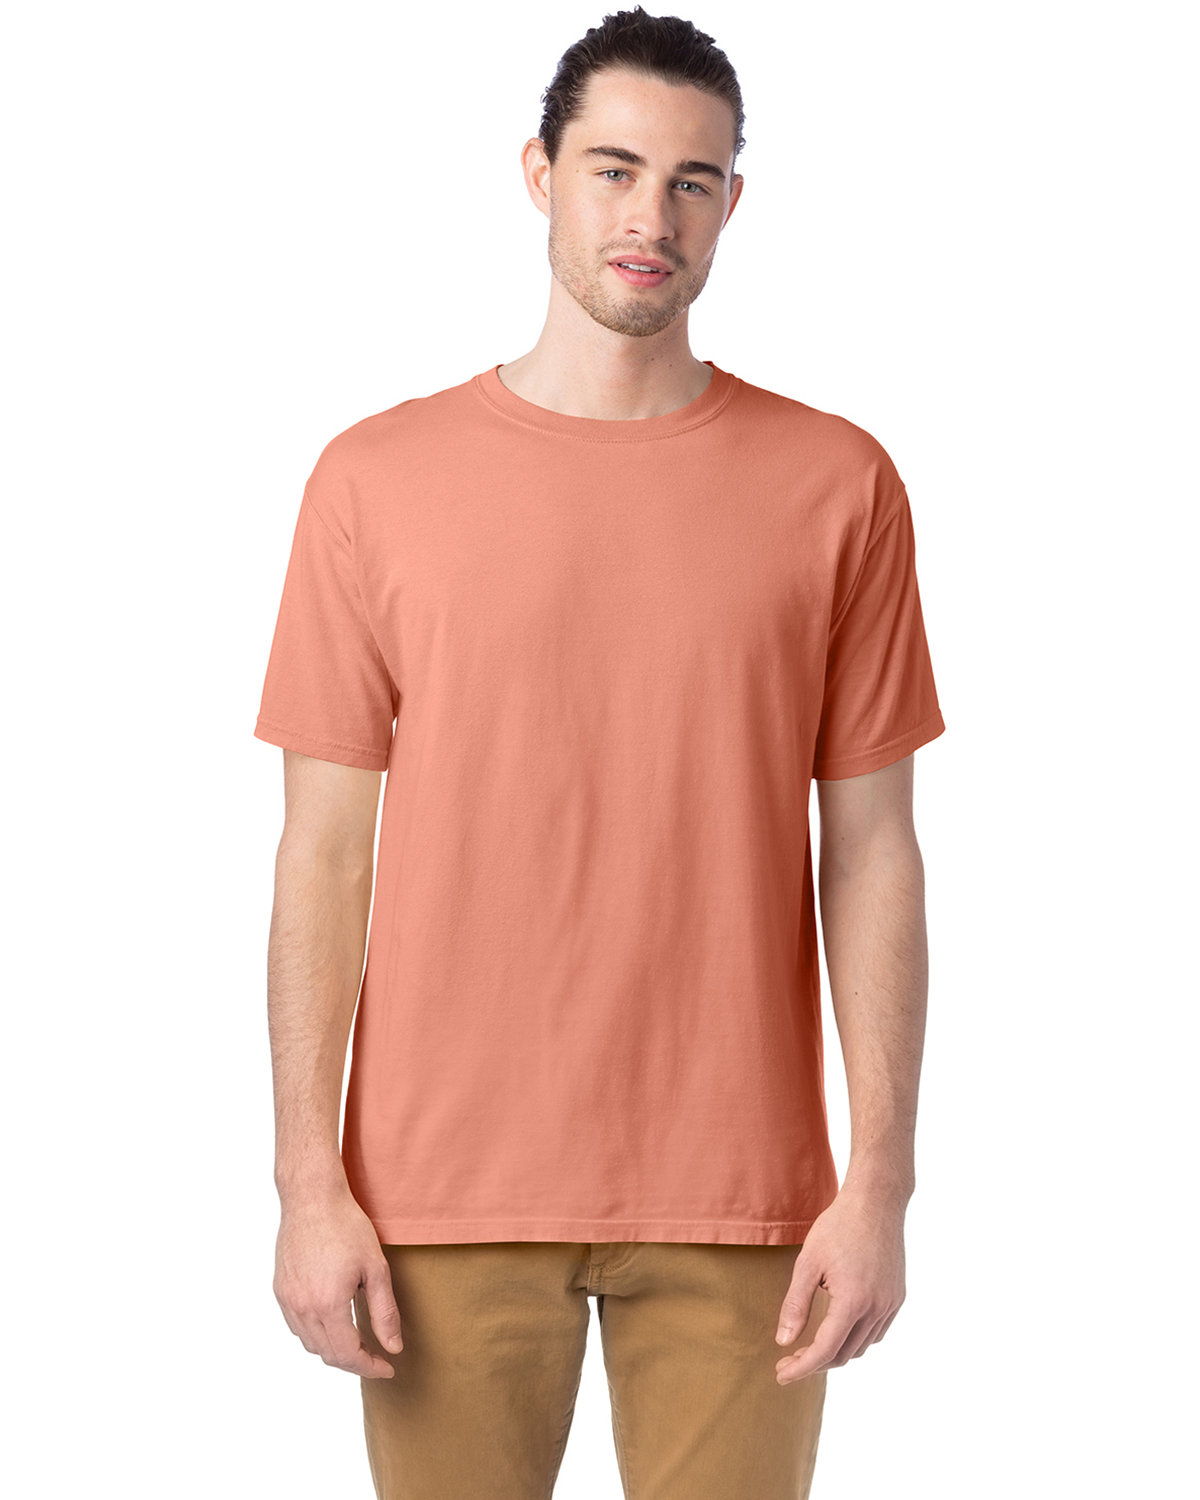 ComfortWash by Hanes Men's Garment-Dyed T-Shirt CLAY